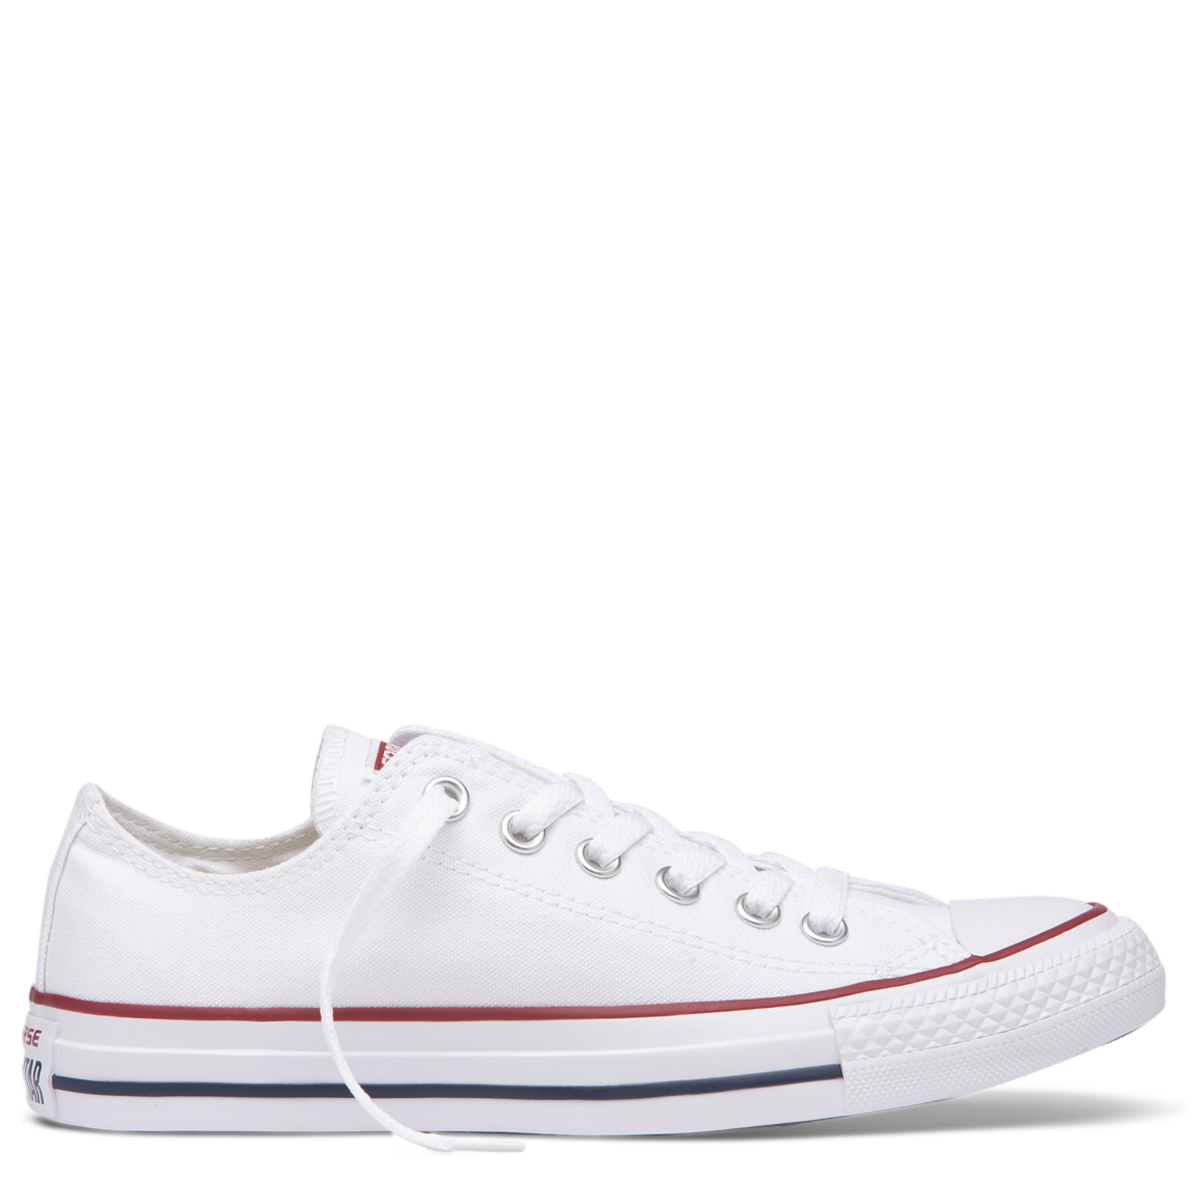 57e0d01ec5790 Buy Chuck Taylor All Star Classic Colour Low Top White online at Converse. Free  shipping on orders over  75.